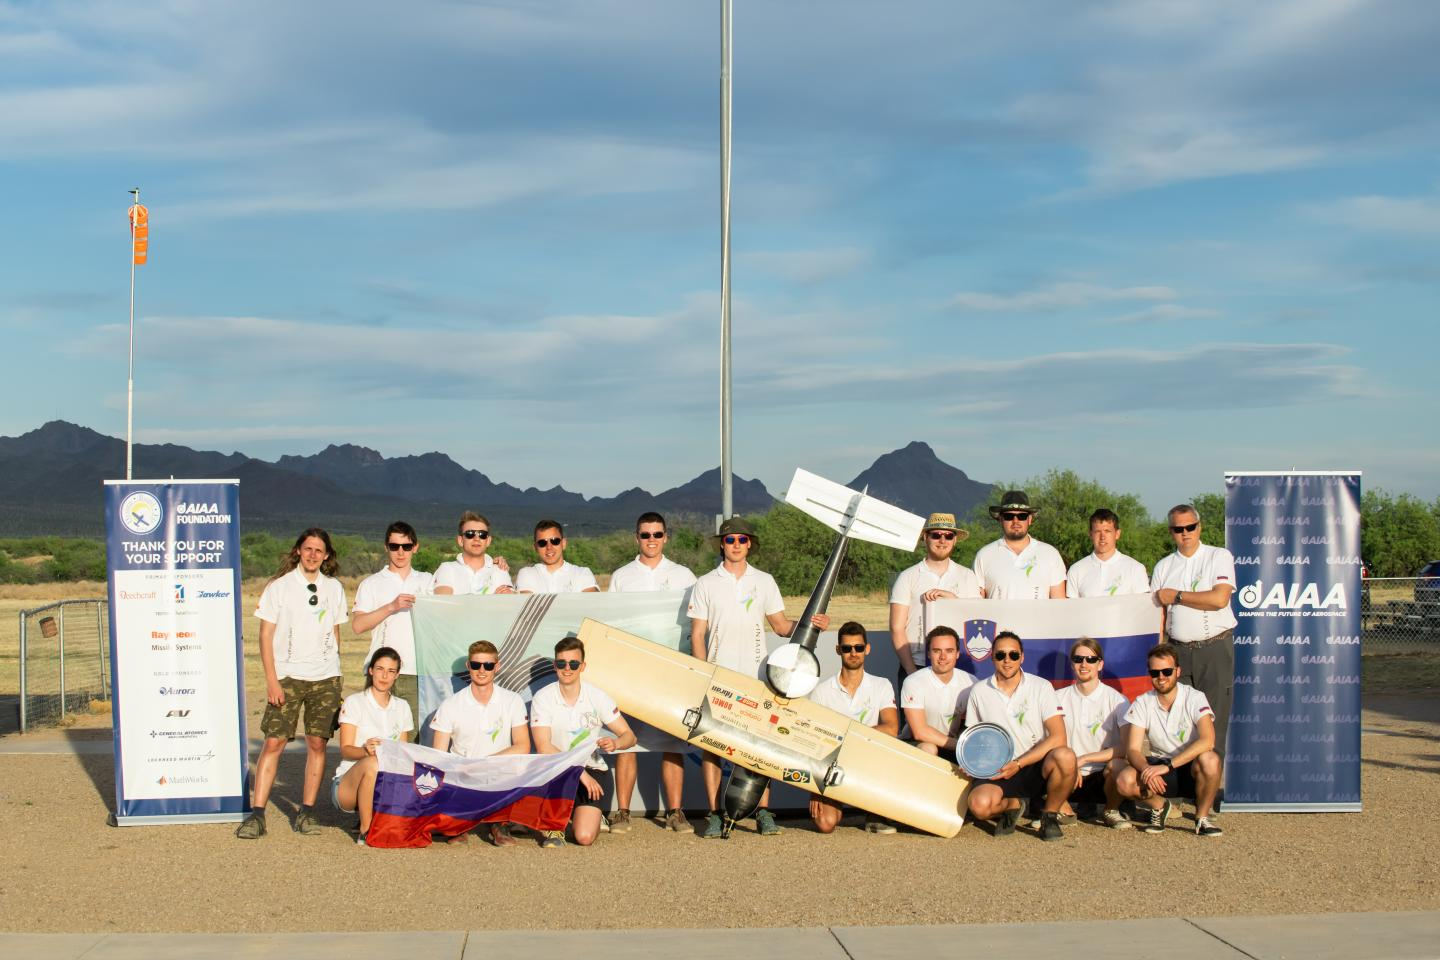 Slovenia's University of Ljubljana wins 23rd Annual Student Design/Build/Fly Competition